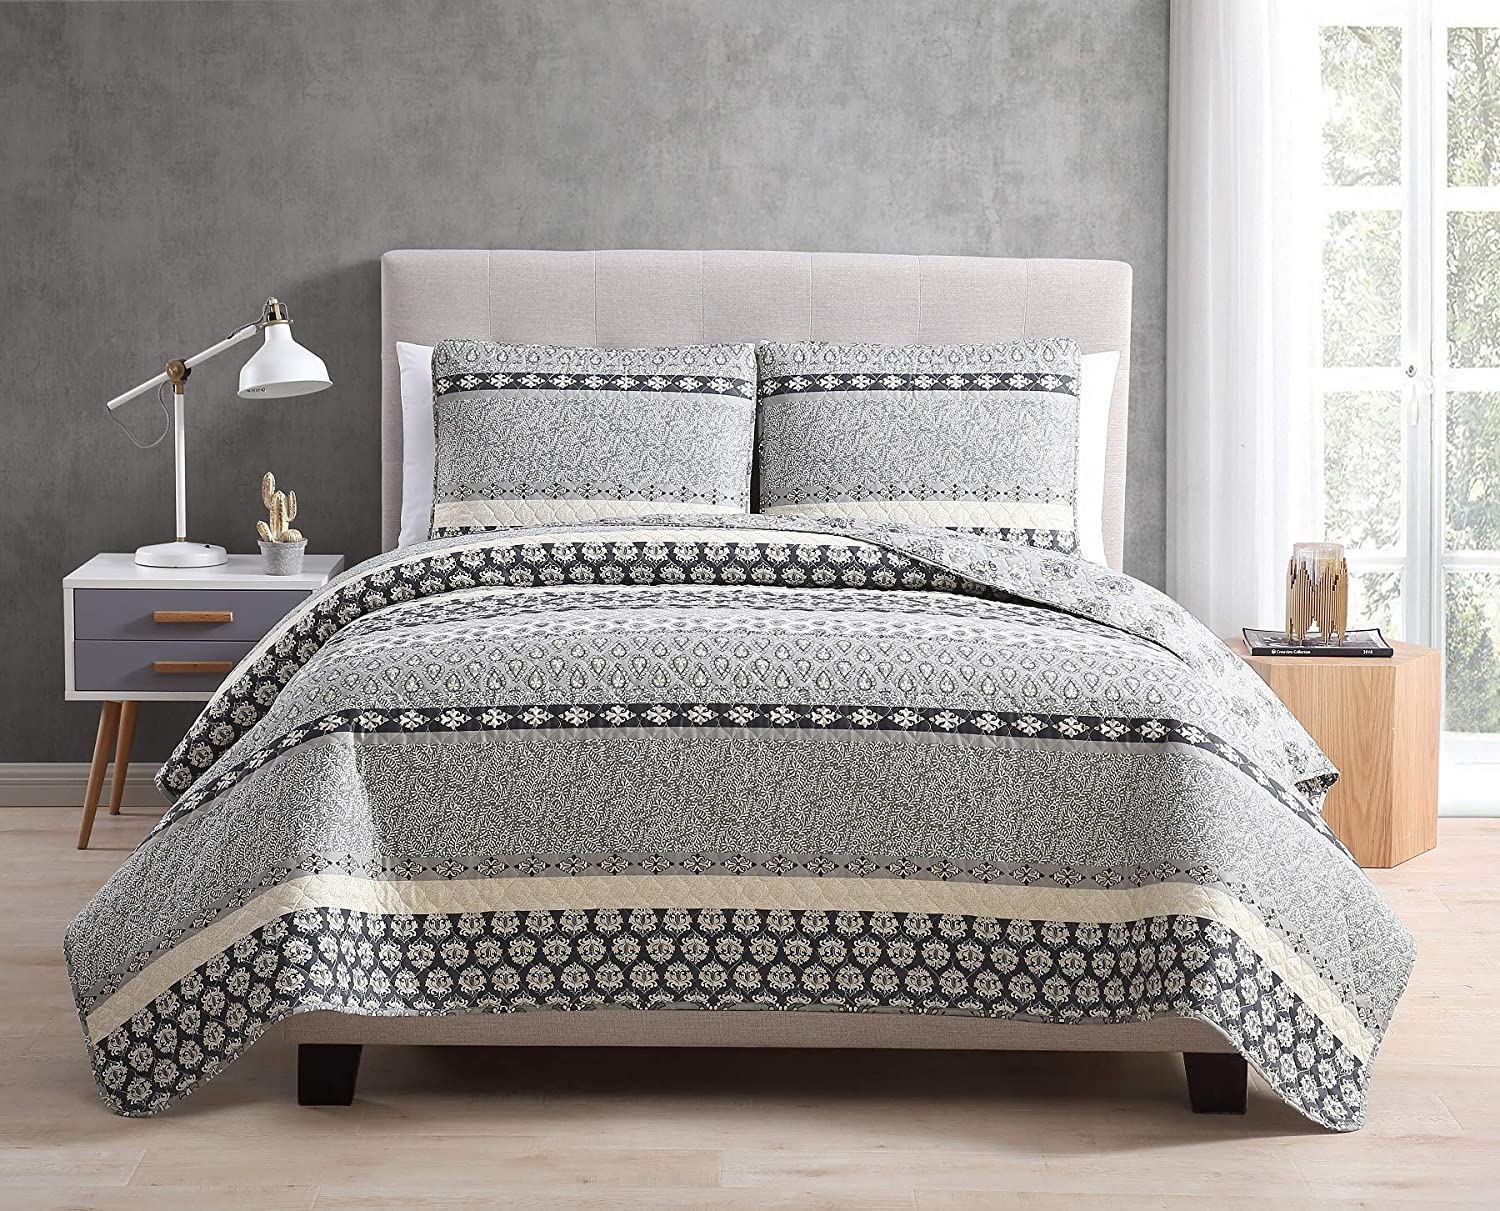 Morgan Home Printed 3 Piece Reversible Quilt Set With Shams All Season Comfort Available In Colors Sizes Grey Full Queen Kitchen Dining